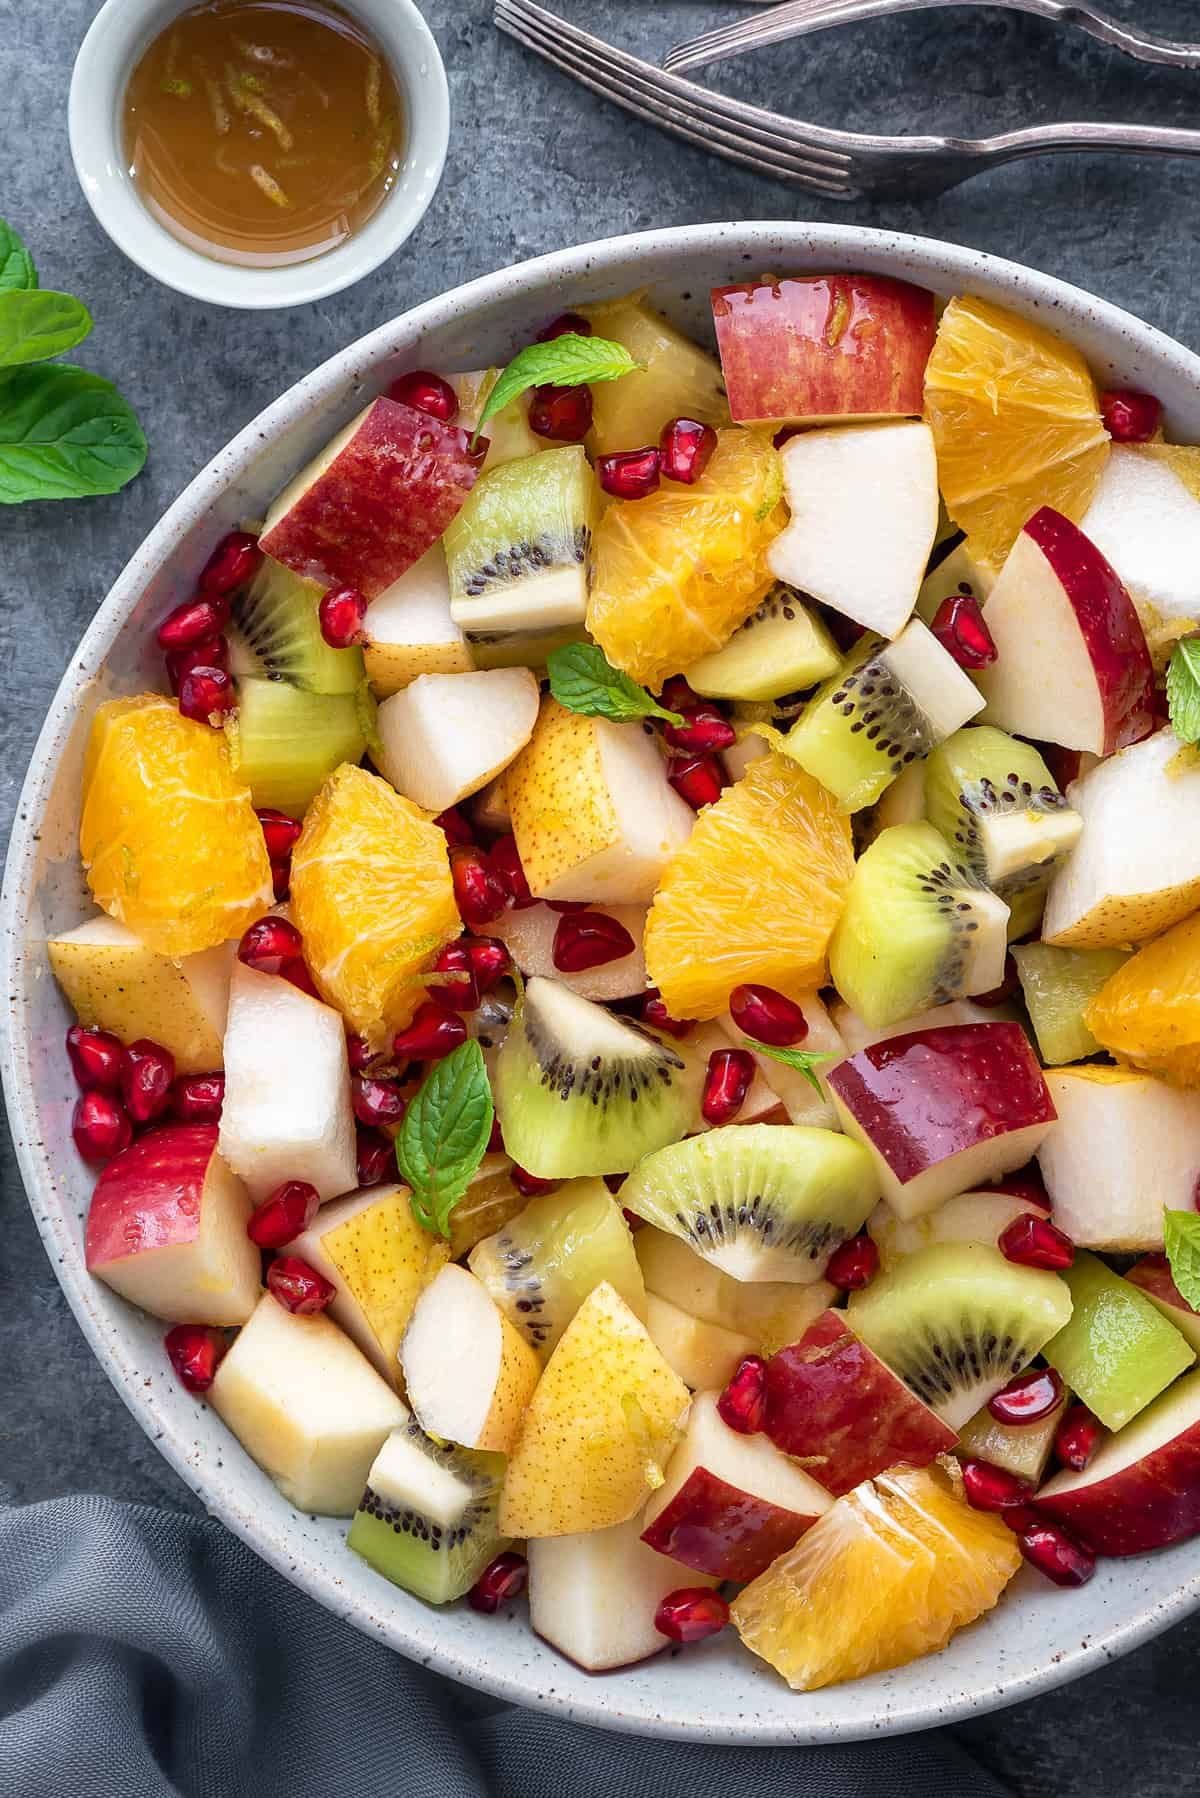 Close up shot of winter fruit salad garnished with fresh mint leaves in a white bowl